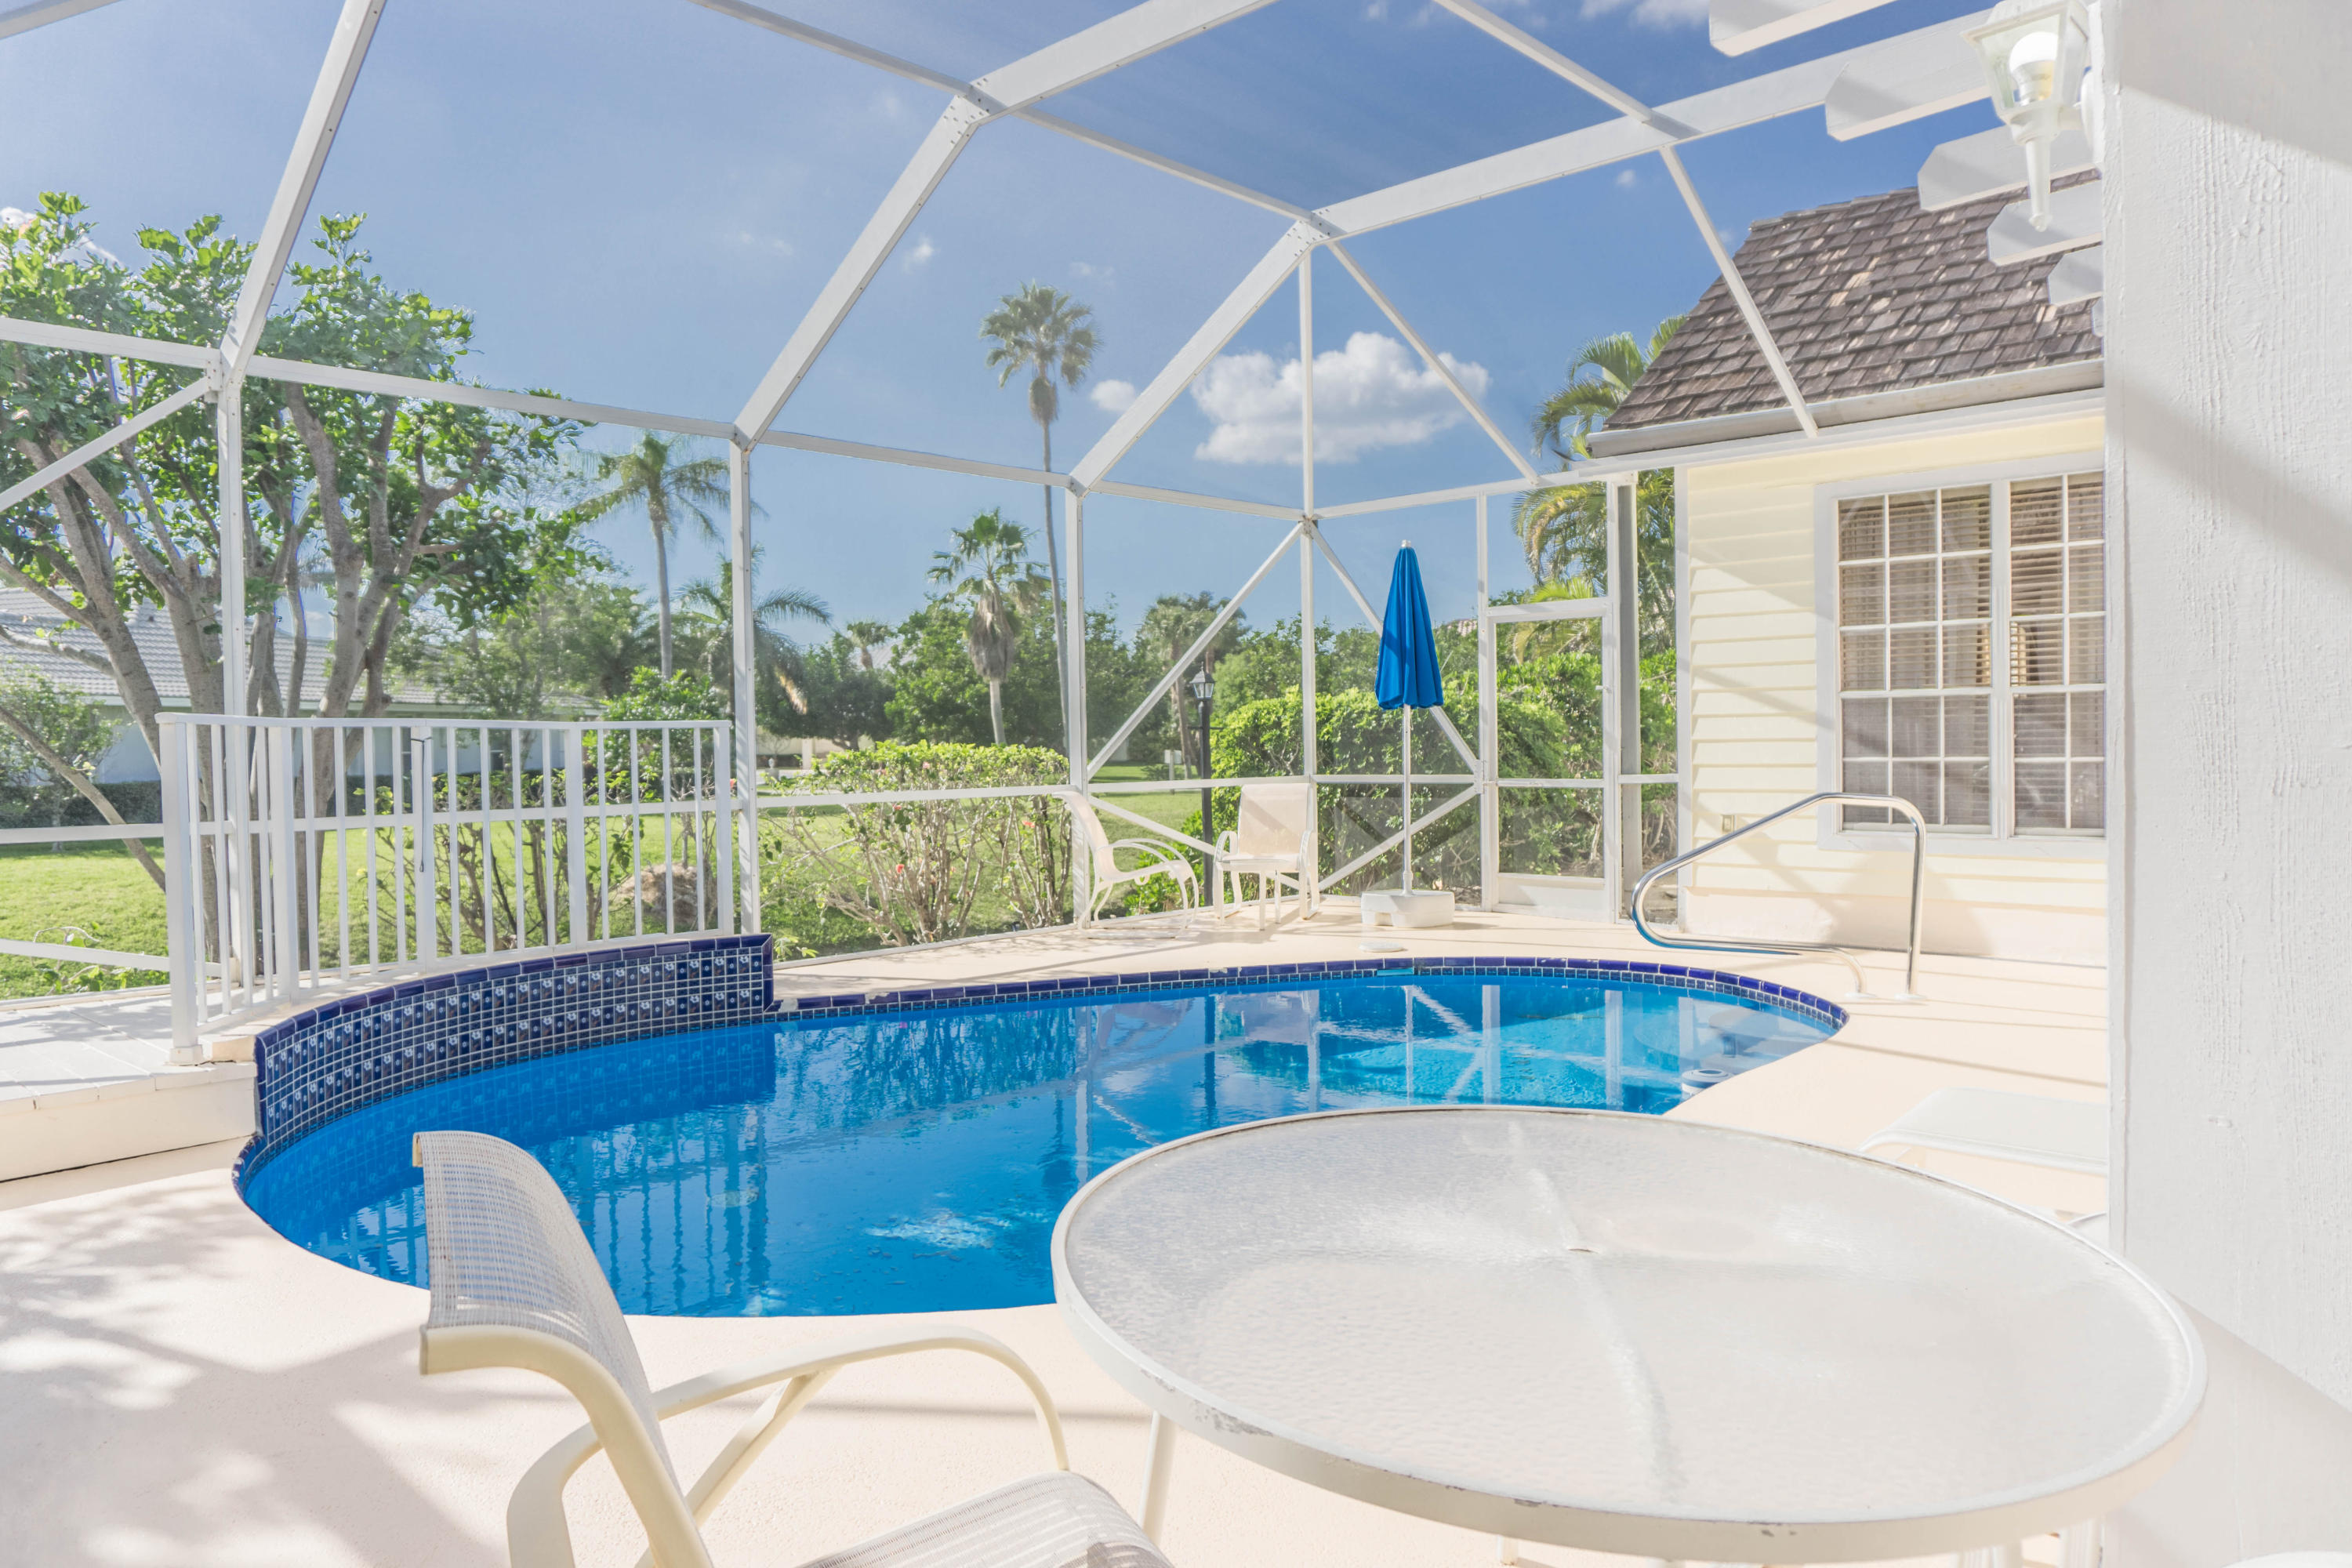 OLYMPUS HOMES FOR SALE